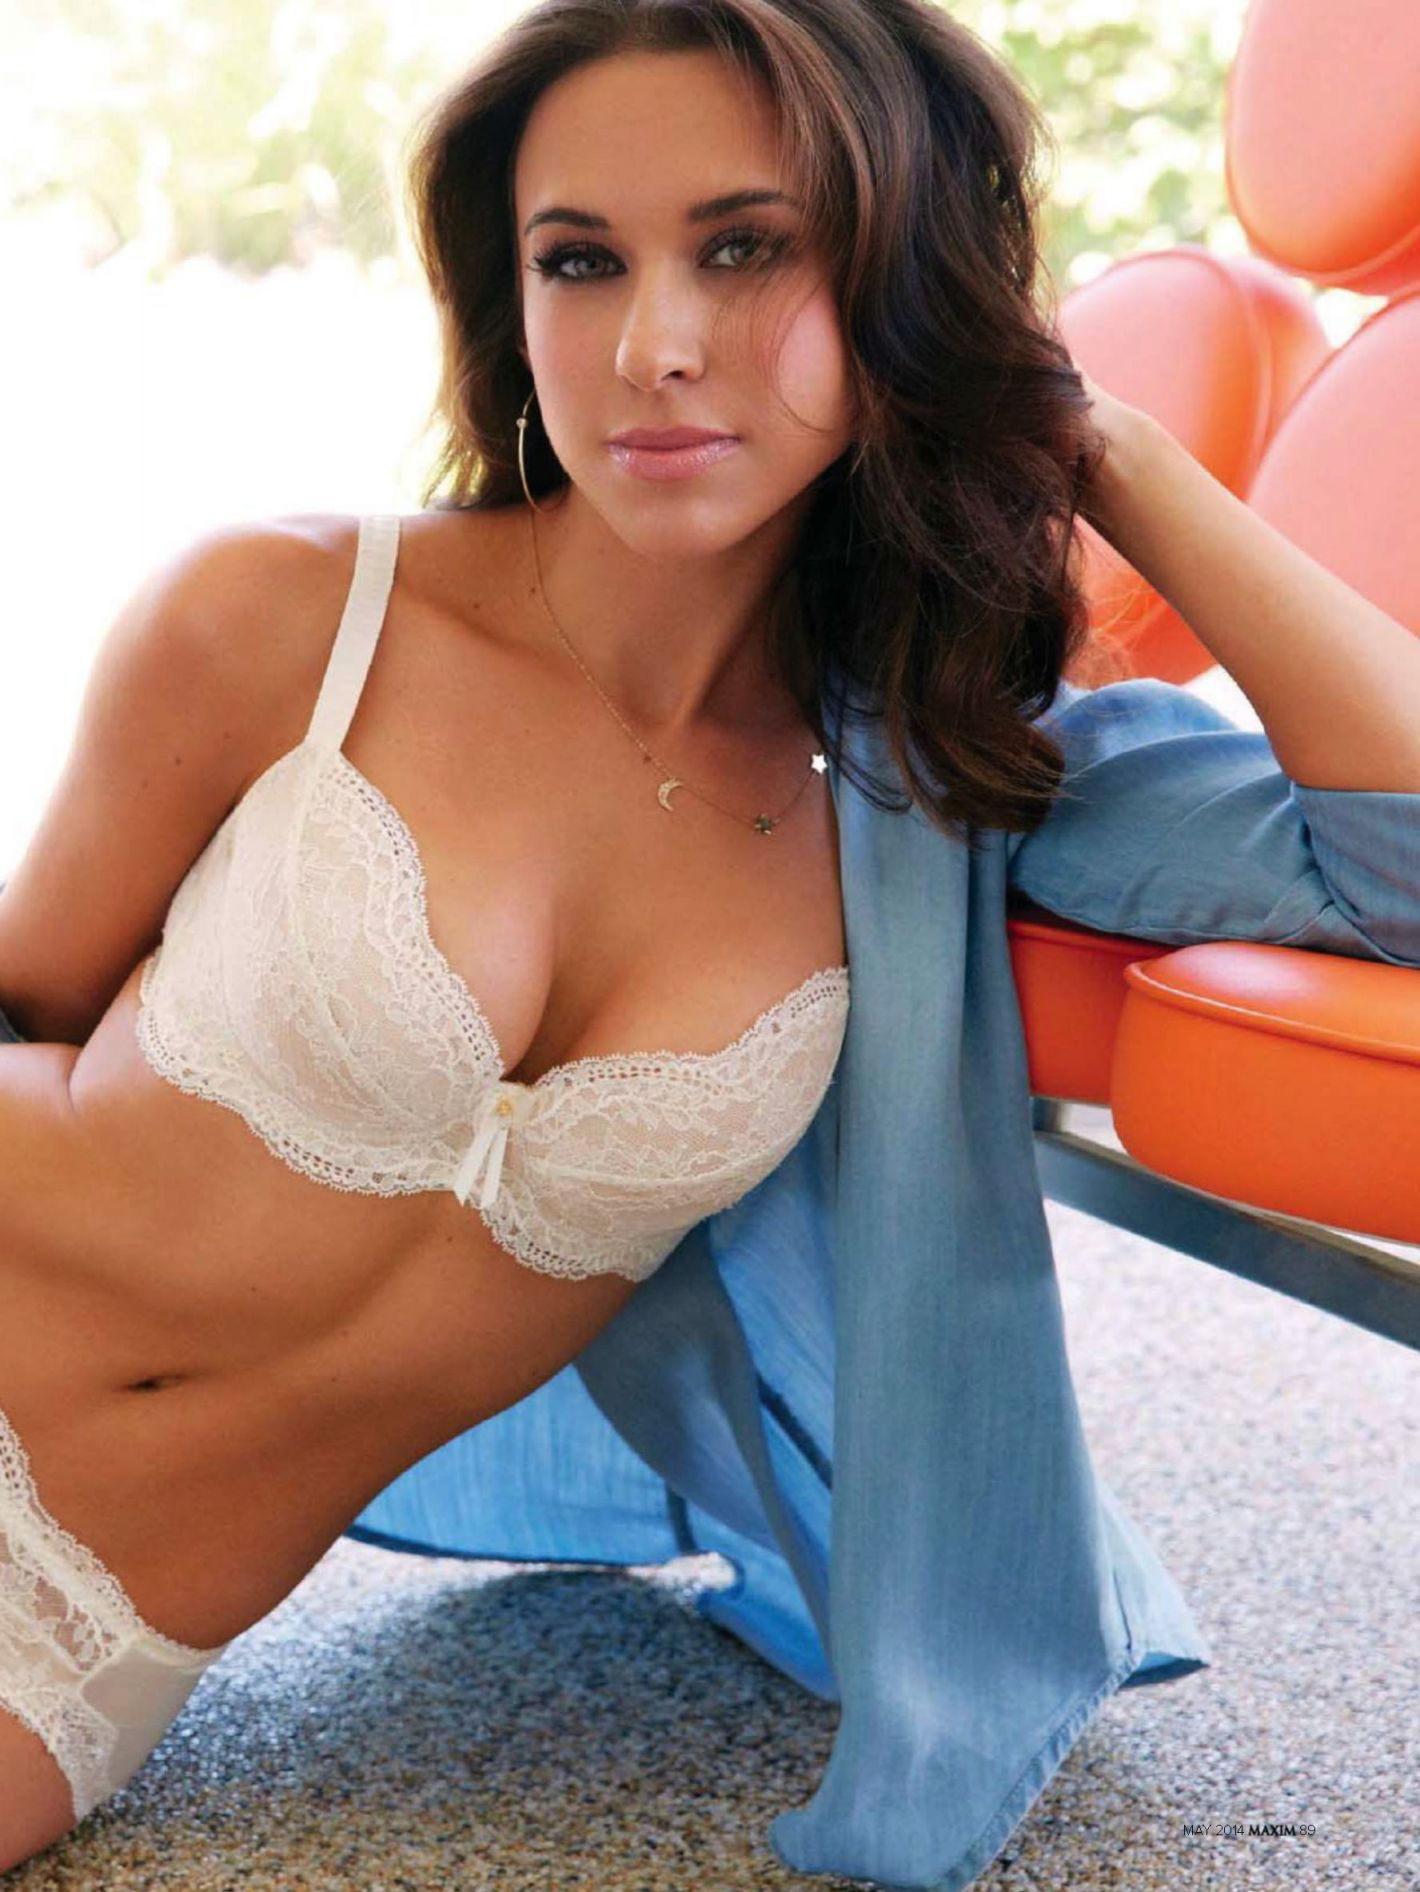 Butt Lacey Chabert nudes (97 pictures) Erotica, YouTube, cleavage